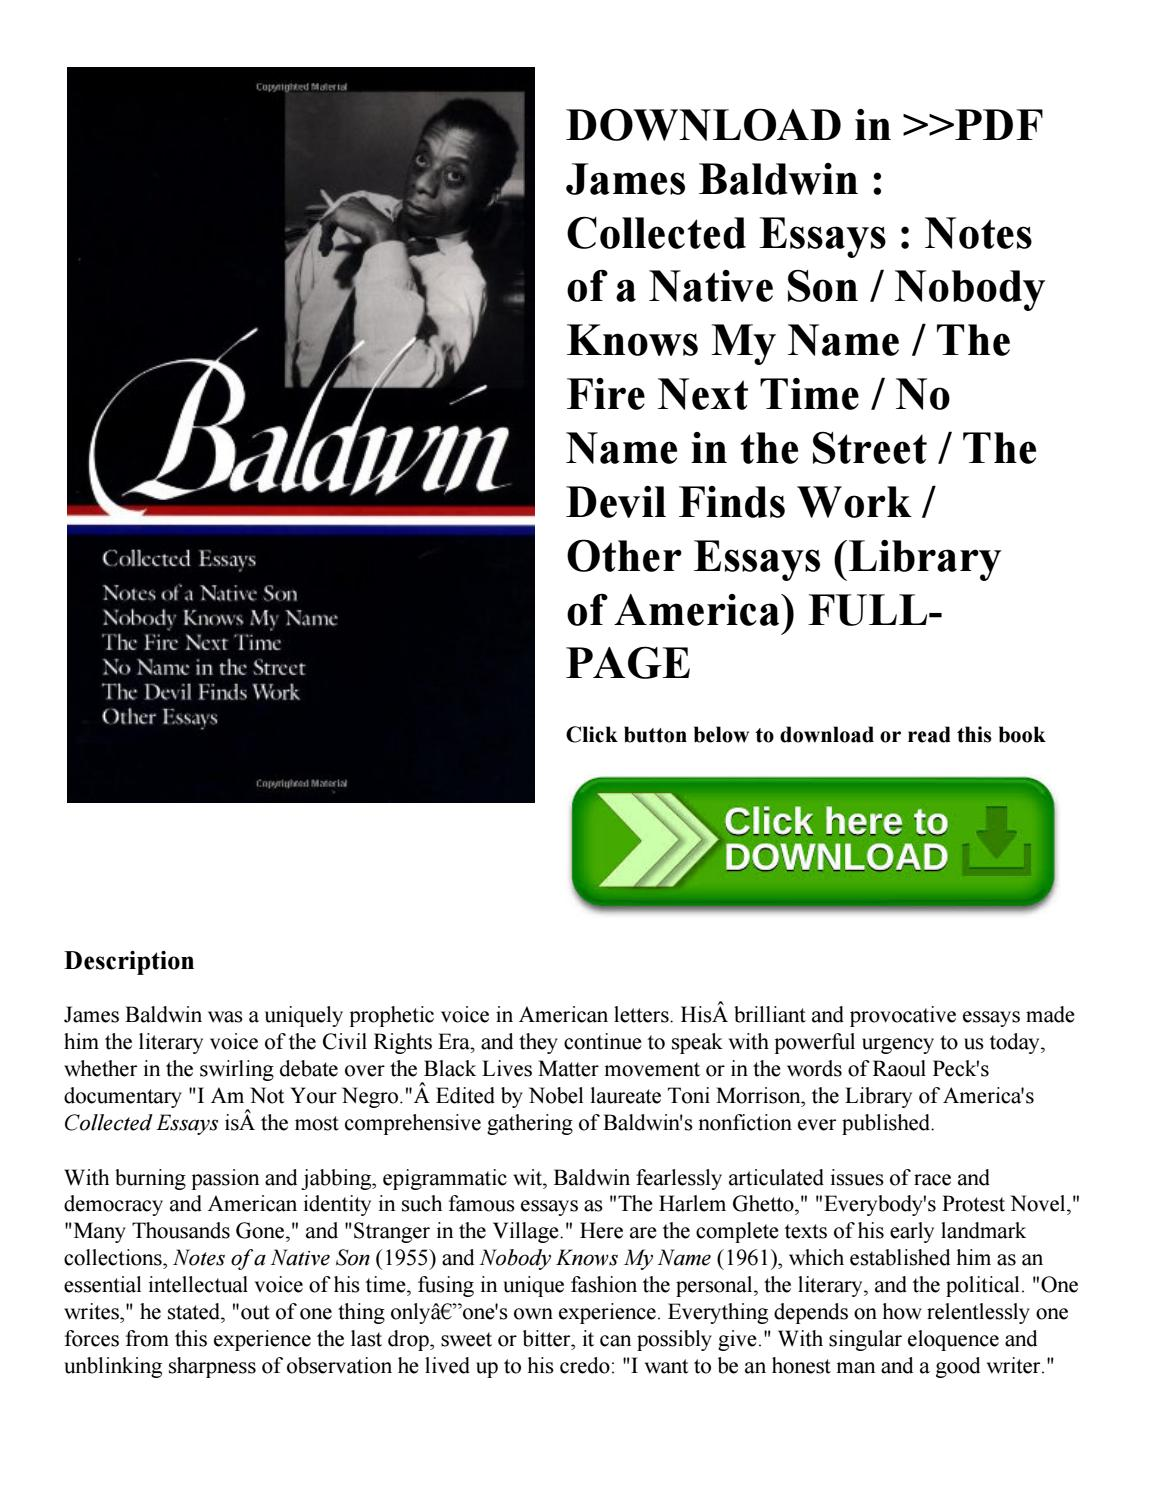 005 Essay Example James Baldwin Collected Essays Page 1 Wondrous Google Books Pdf Table Of Contents Full